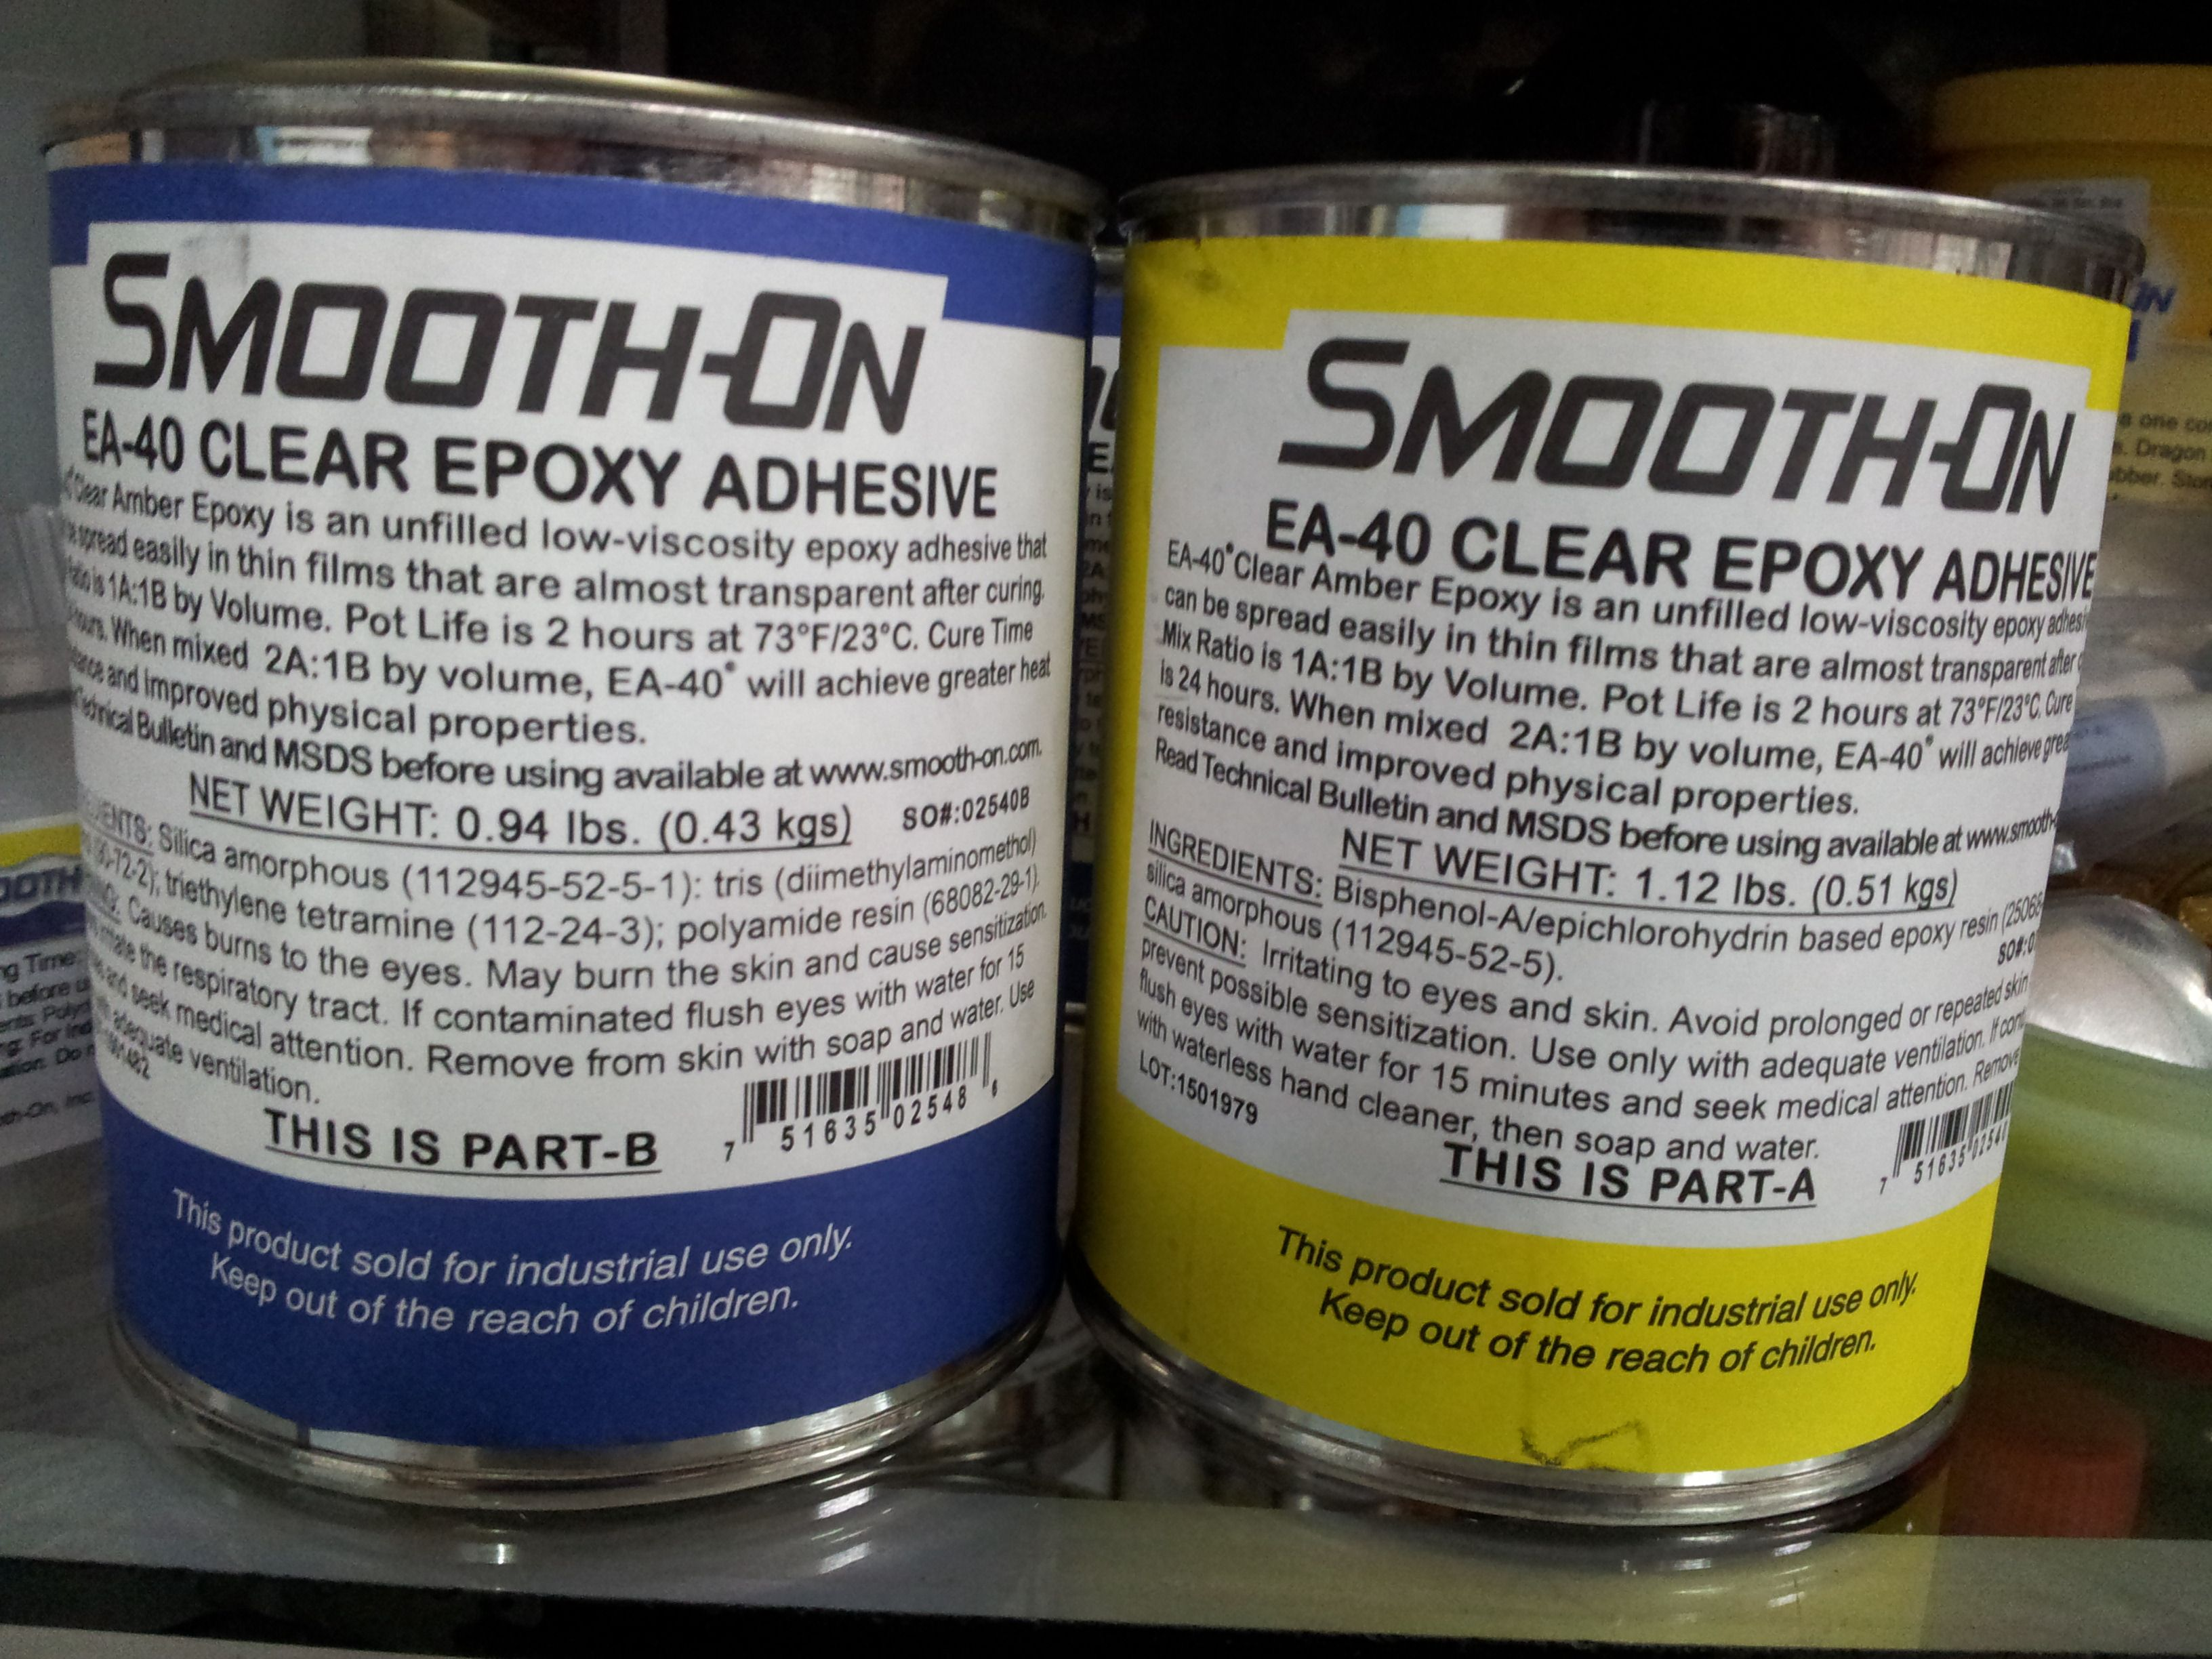 Ea 40 From Smoothon Is A Flexible Low Viscosity Epoxy For Bow Lamination  As Zoom Xb1 Notion) How To Delete